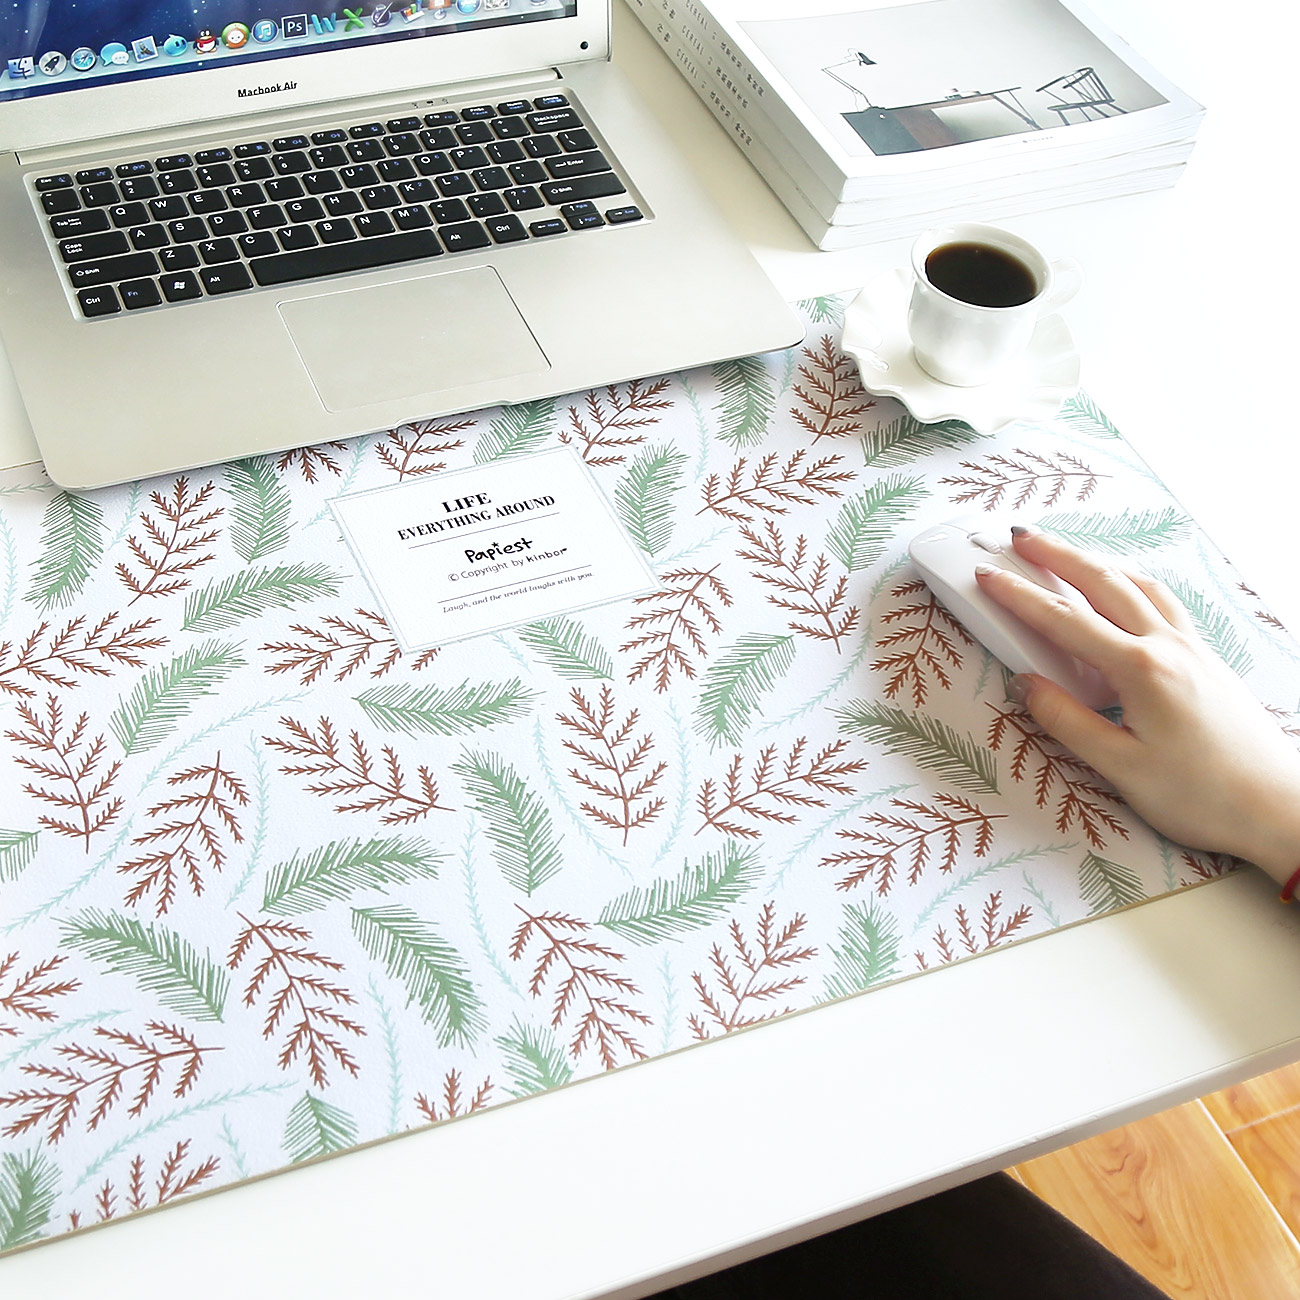 Wide range of animal and plant series tablemat simple waterproof desk computer cute rubber mat game keyboard mat